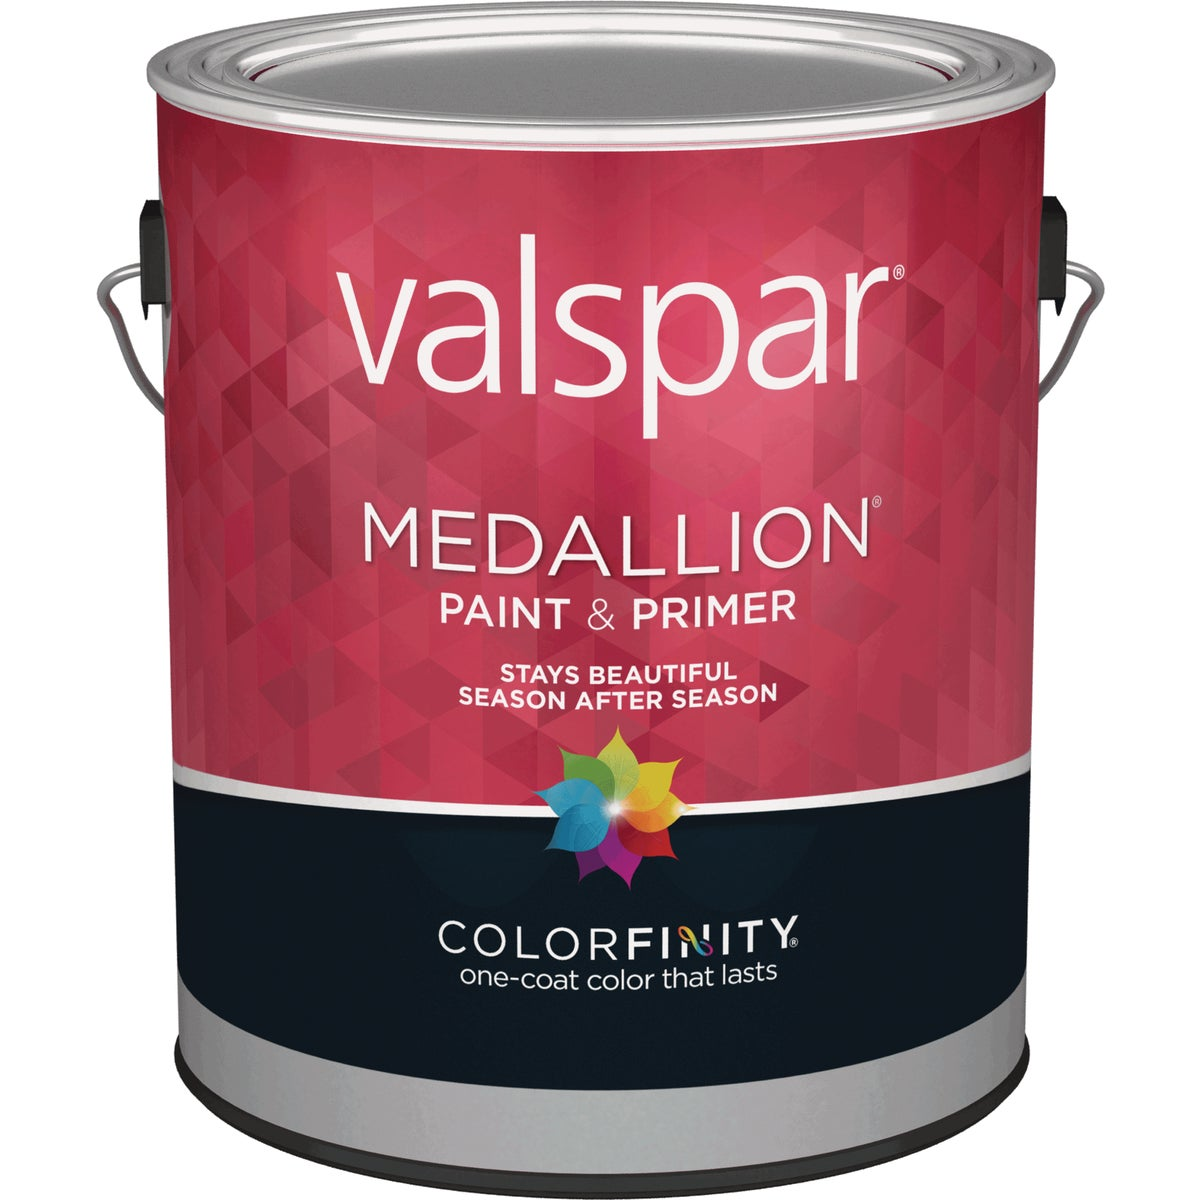 EXT S/G BLACK PAINT - 027.0004315.007 by Valspar Corp